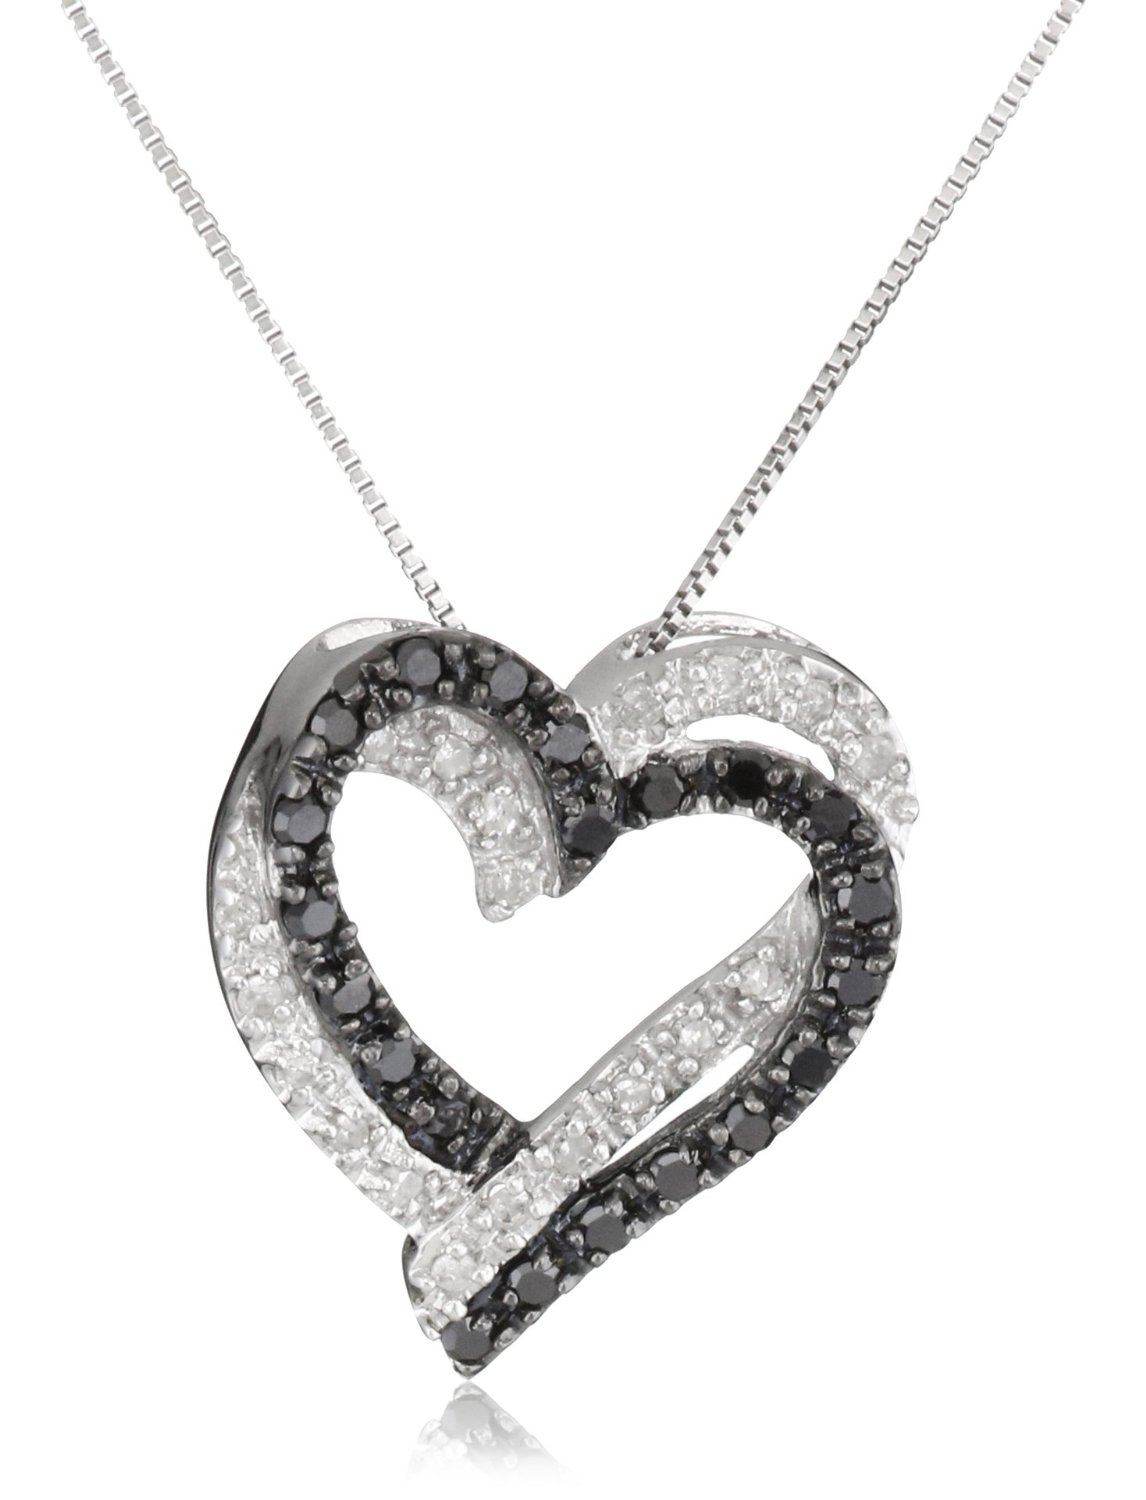 com ct diamond tw product heart buy necklace shaped on detail open alibaba